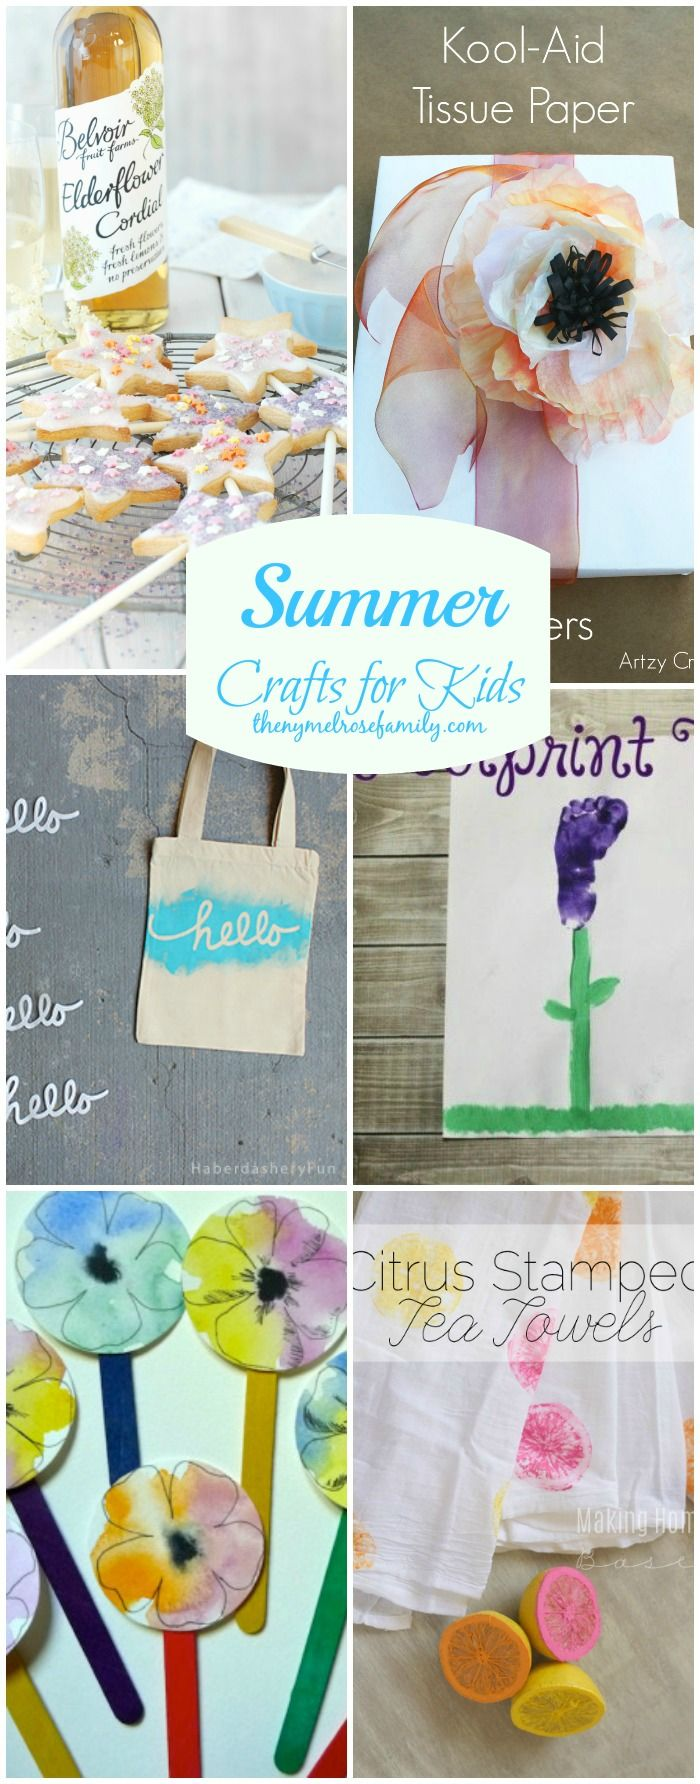 The BEST Summer Crafts for Kids that are sure to be boredom busters!